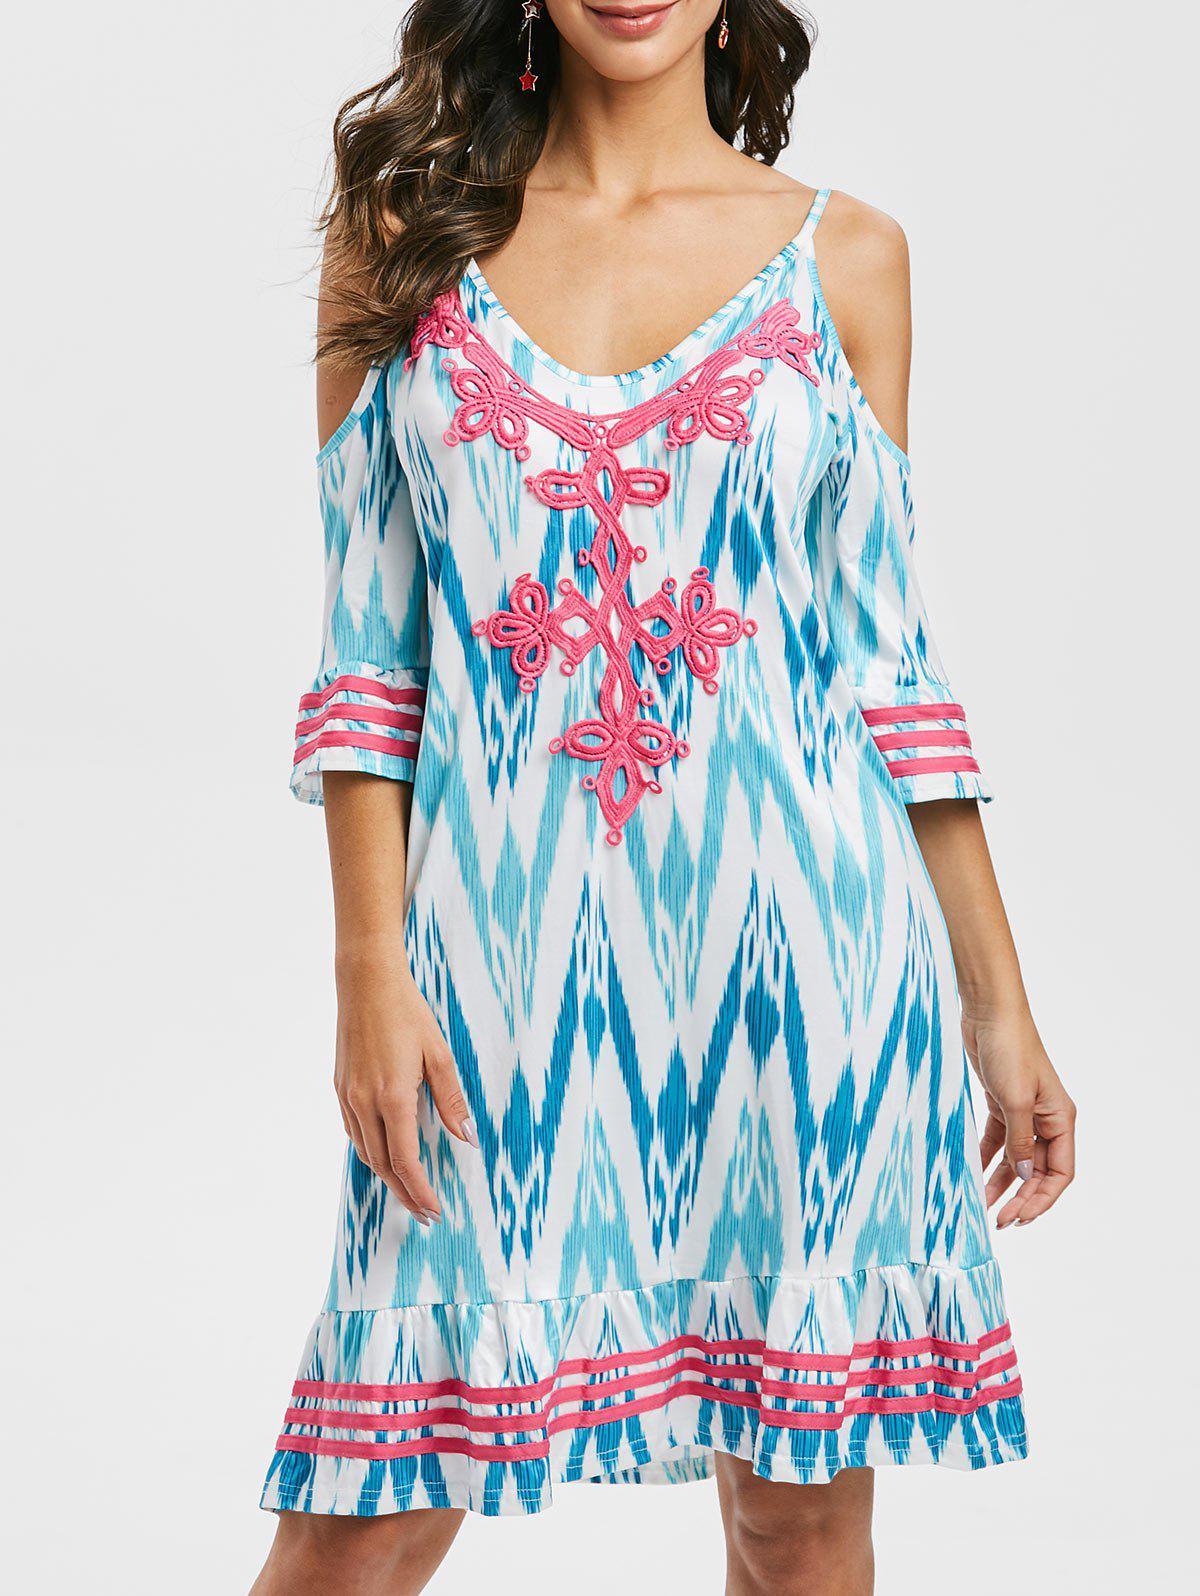 Lace Panel Printed Mini Cami Dress - TURQUOISE M